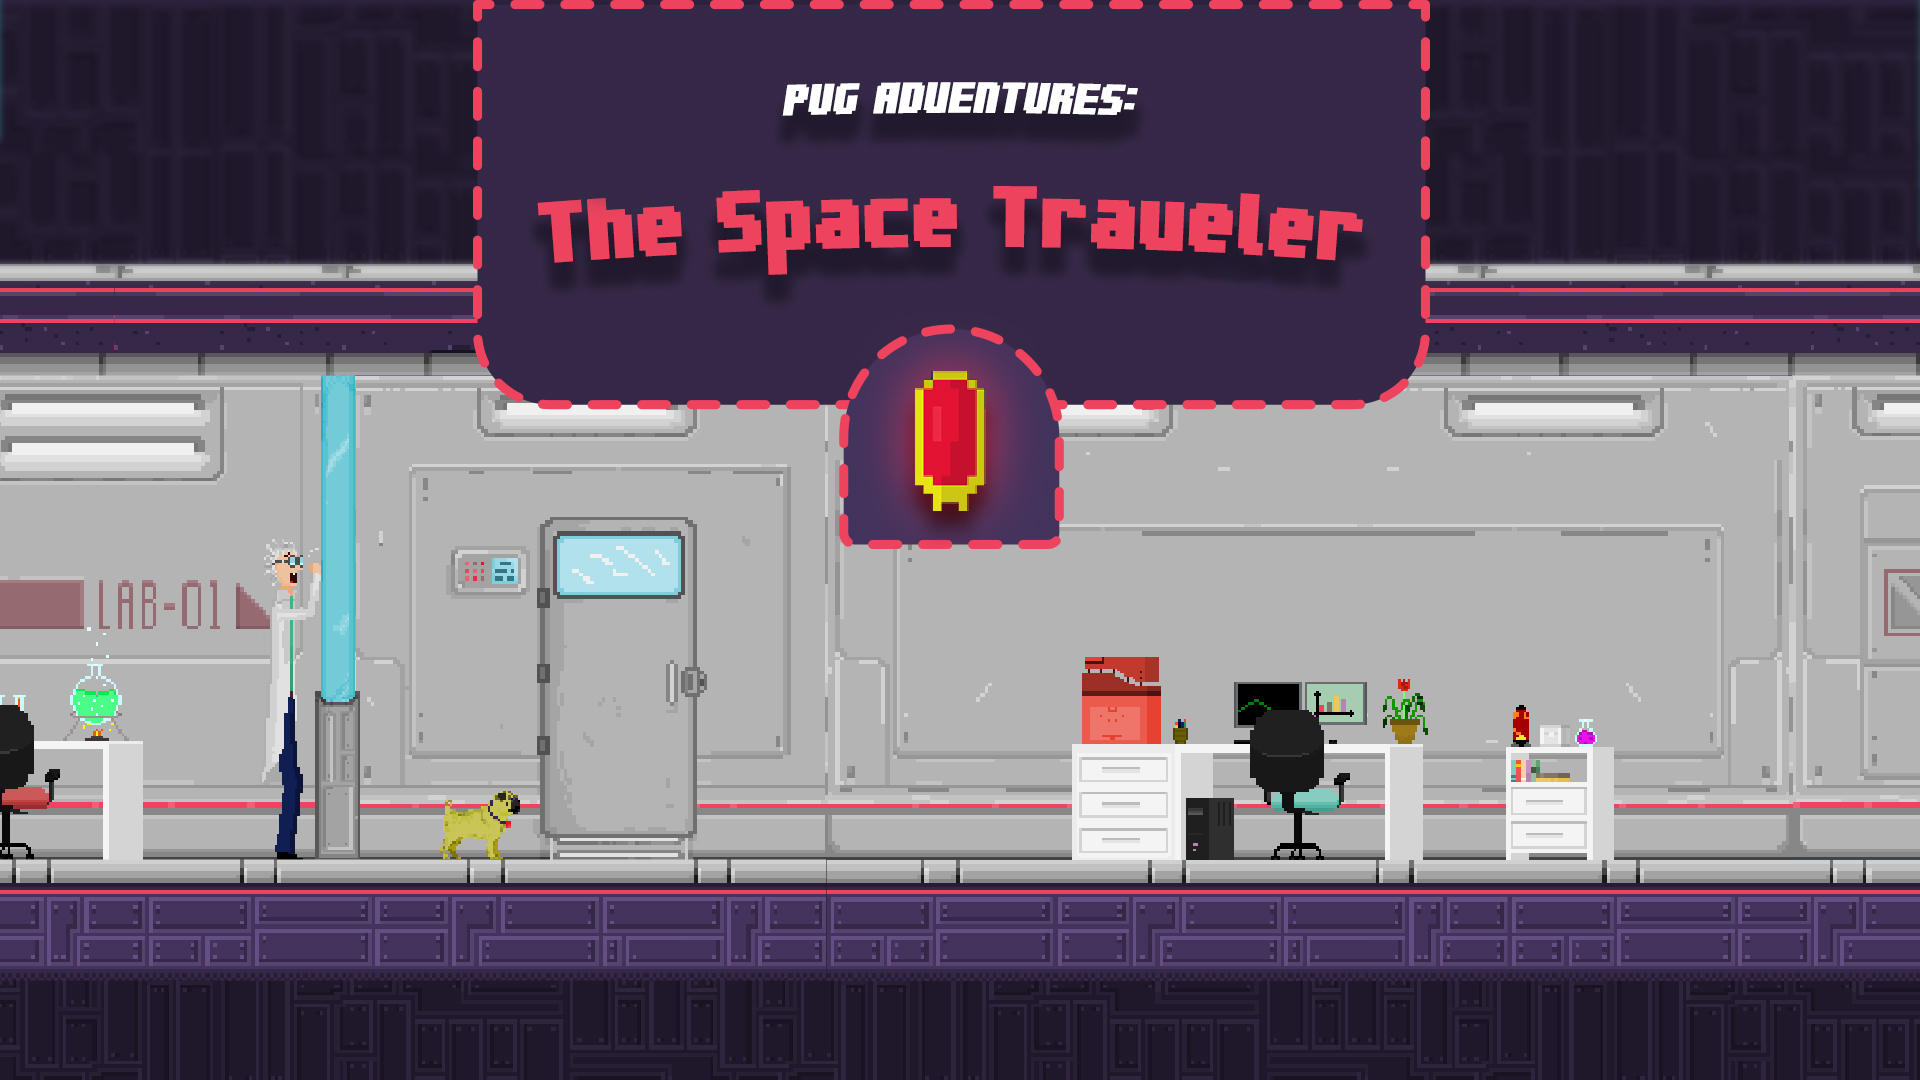 Pug Adventures - The Space Traveler